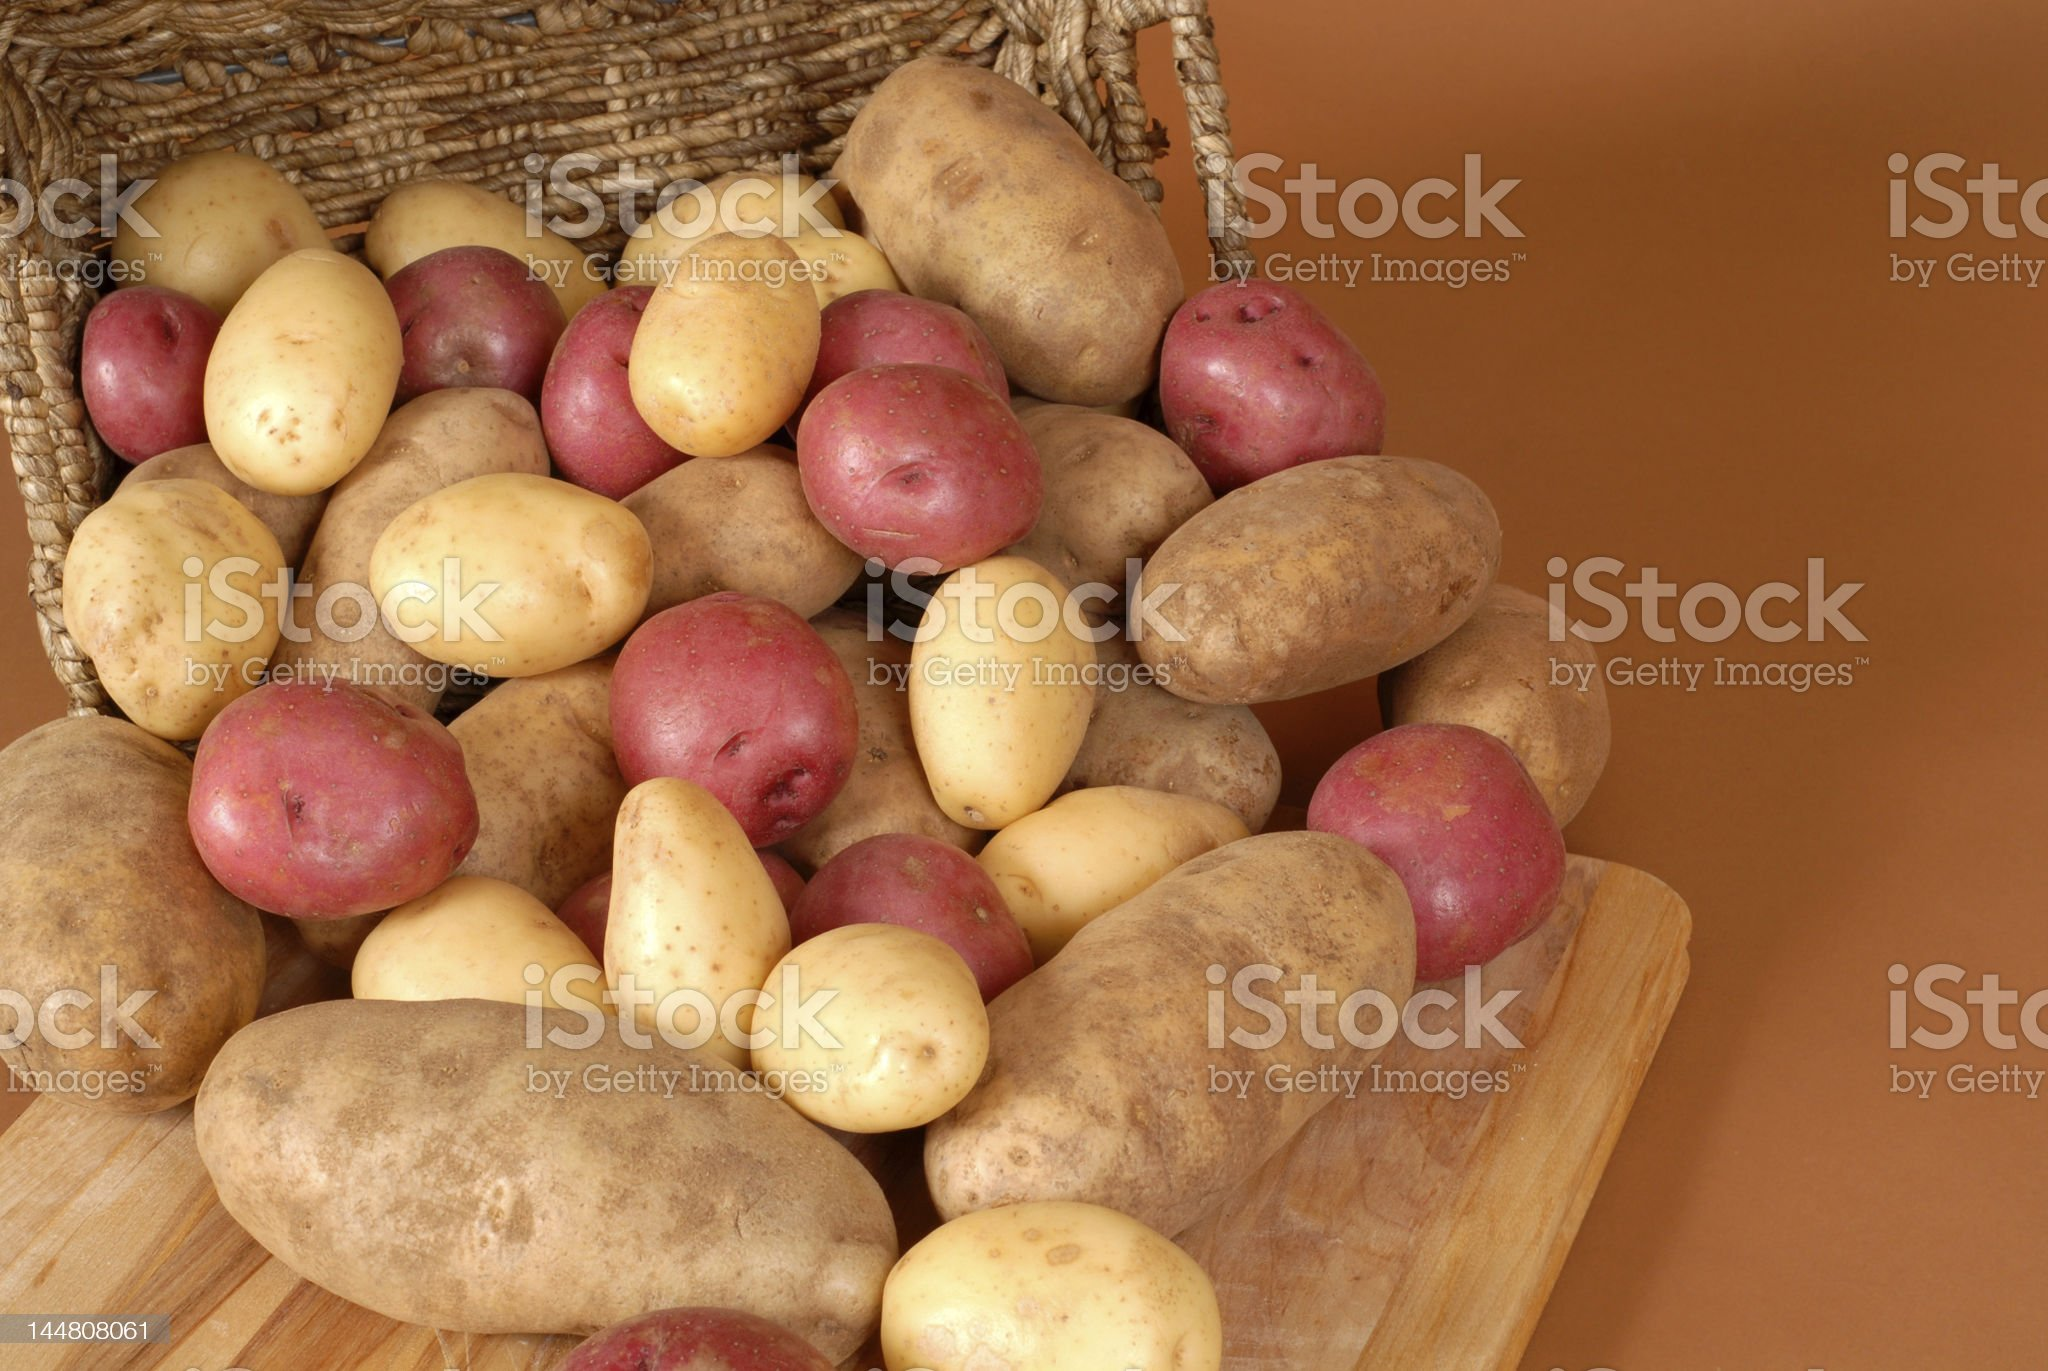 Russet, red and white potatoes spilling out of a basket royalty-free stock photo